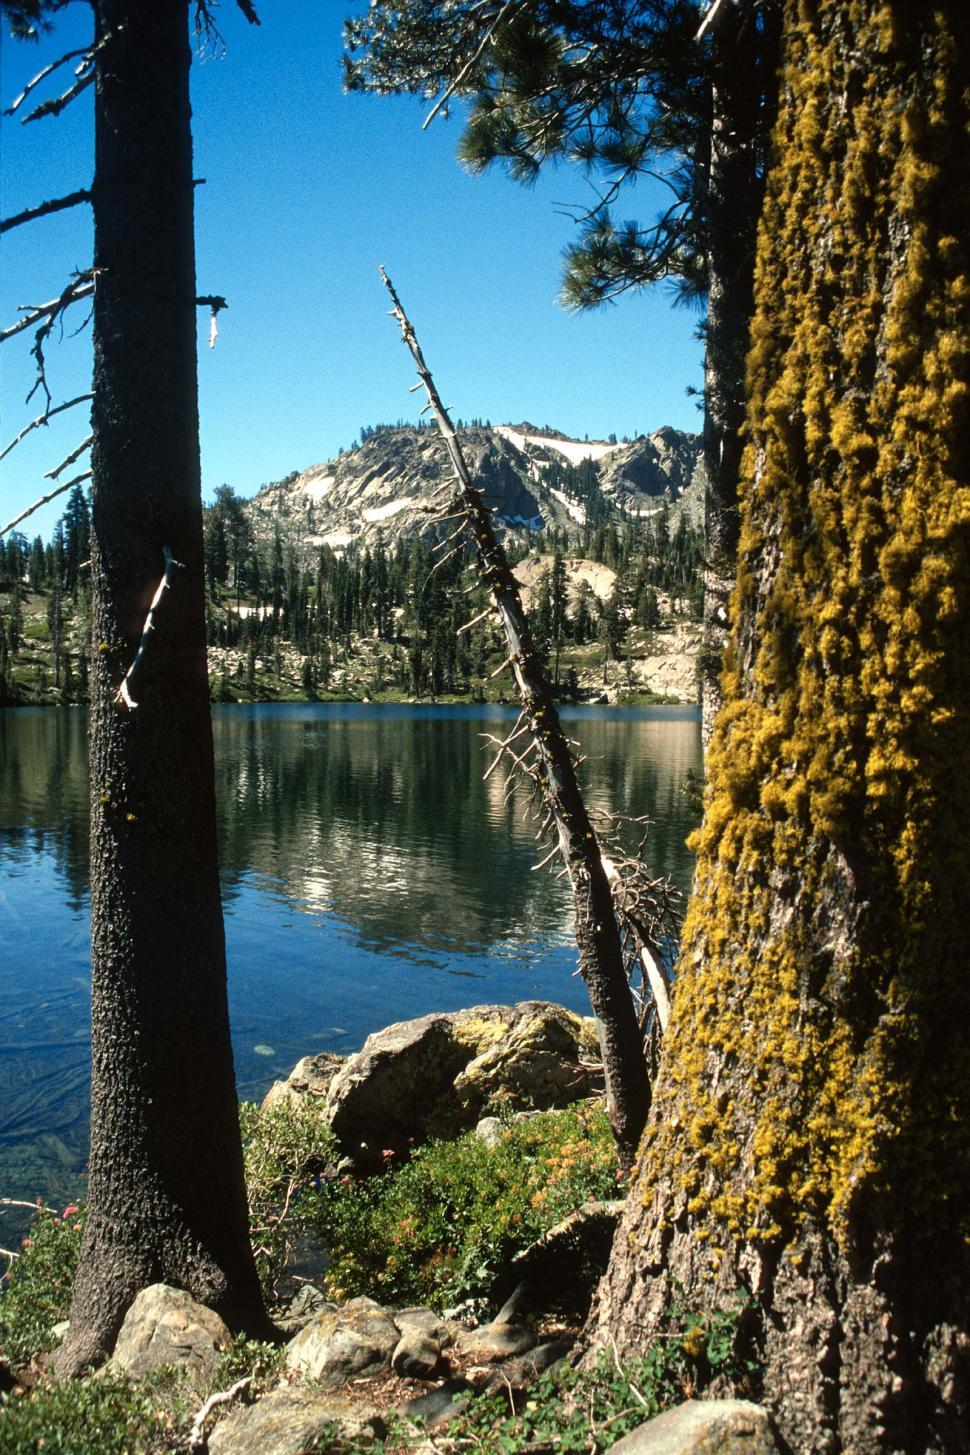 Download Free Stock HD Photo of Mountain lake and trees Online